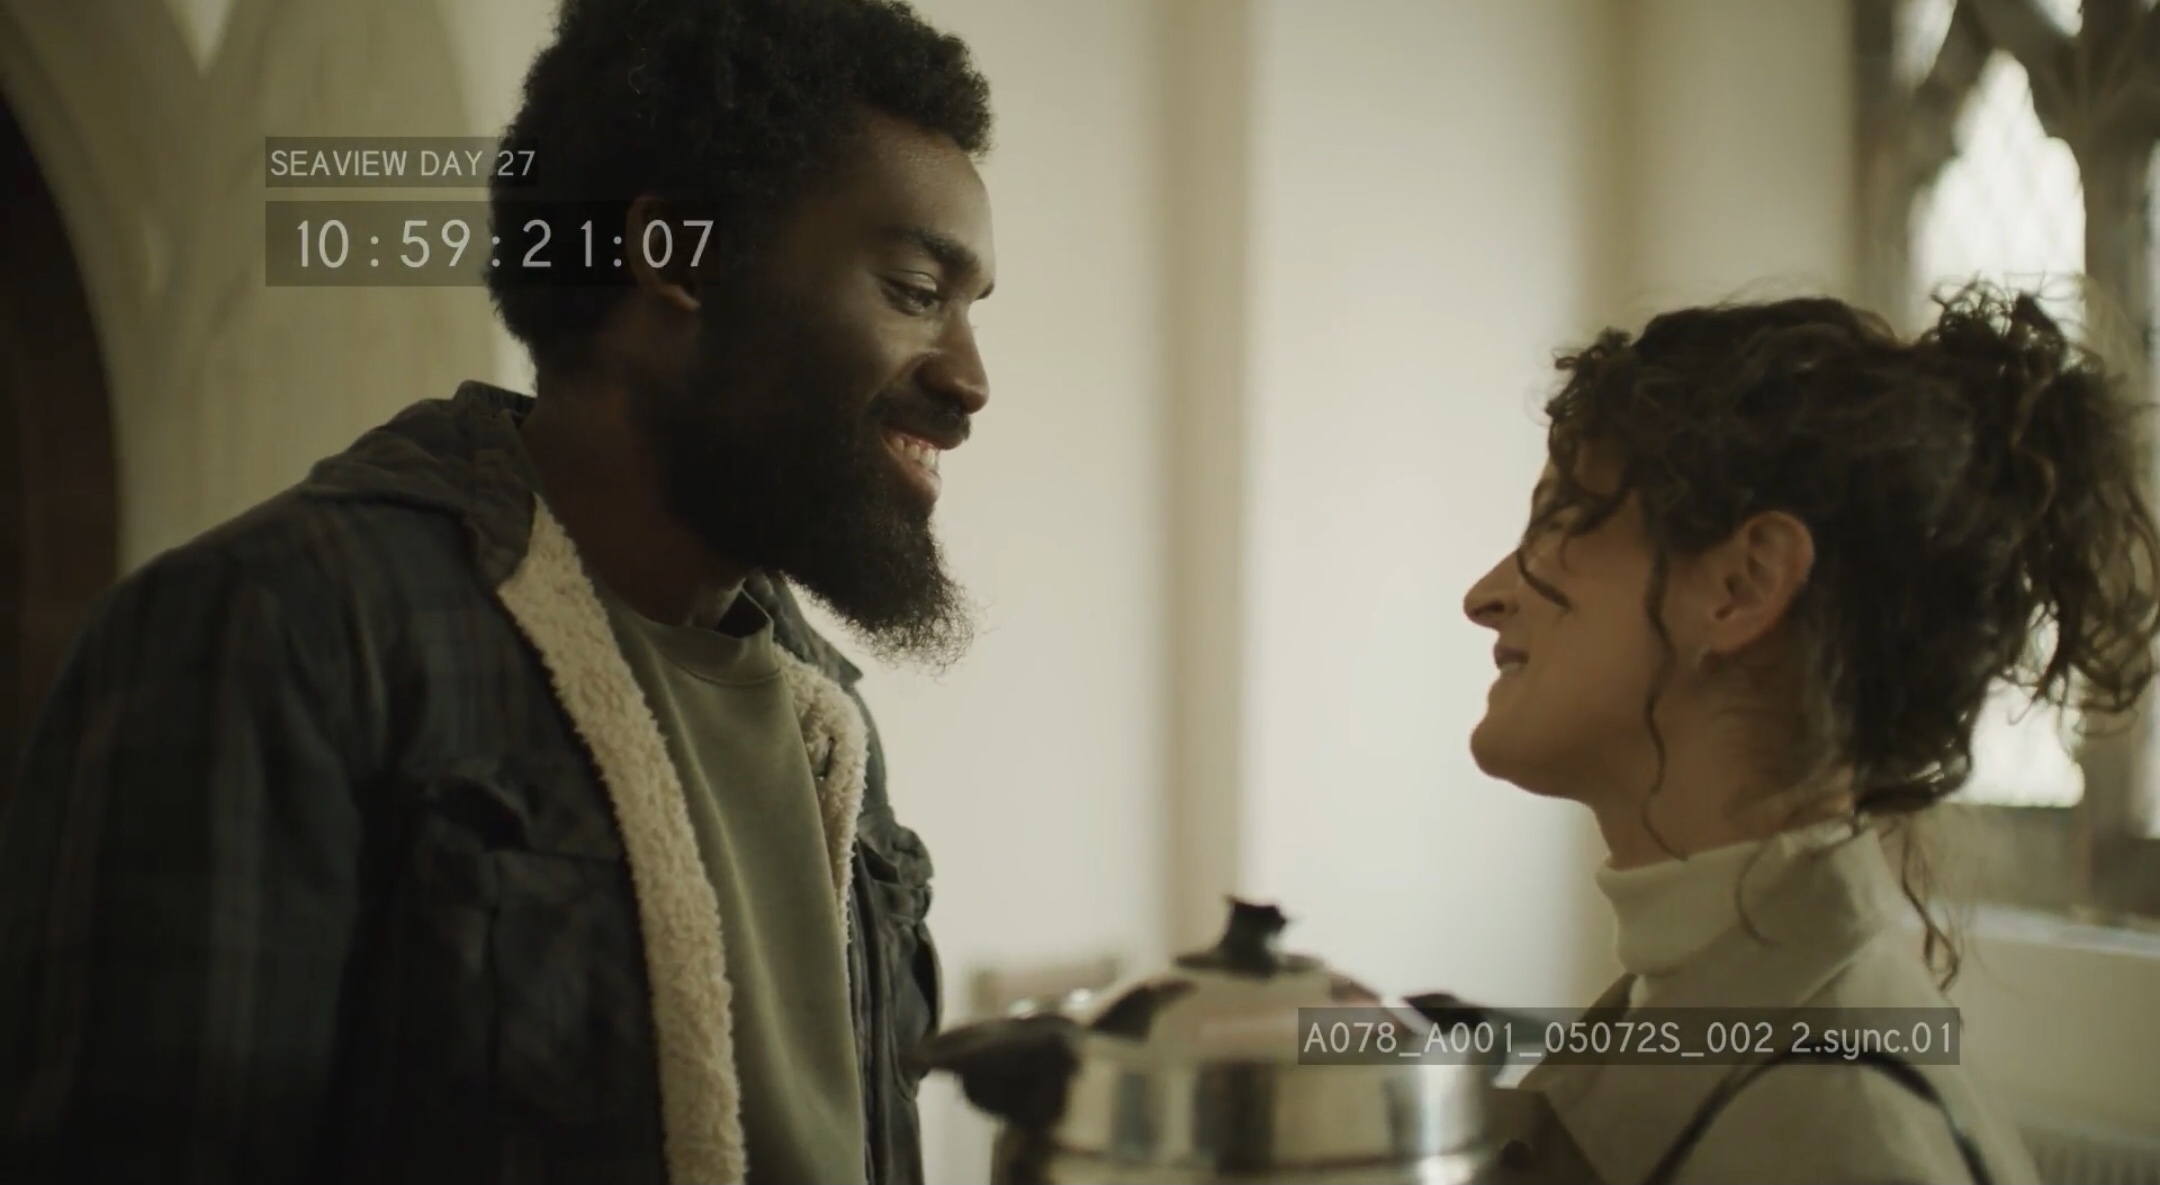 Corey Campbell (Director) and Agatha Elwes (playing Nia)